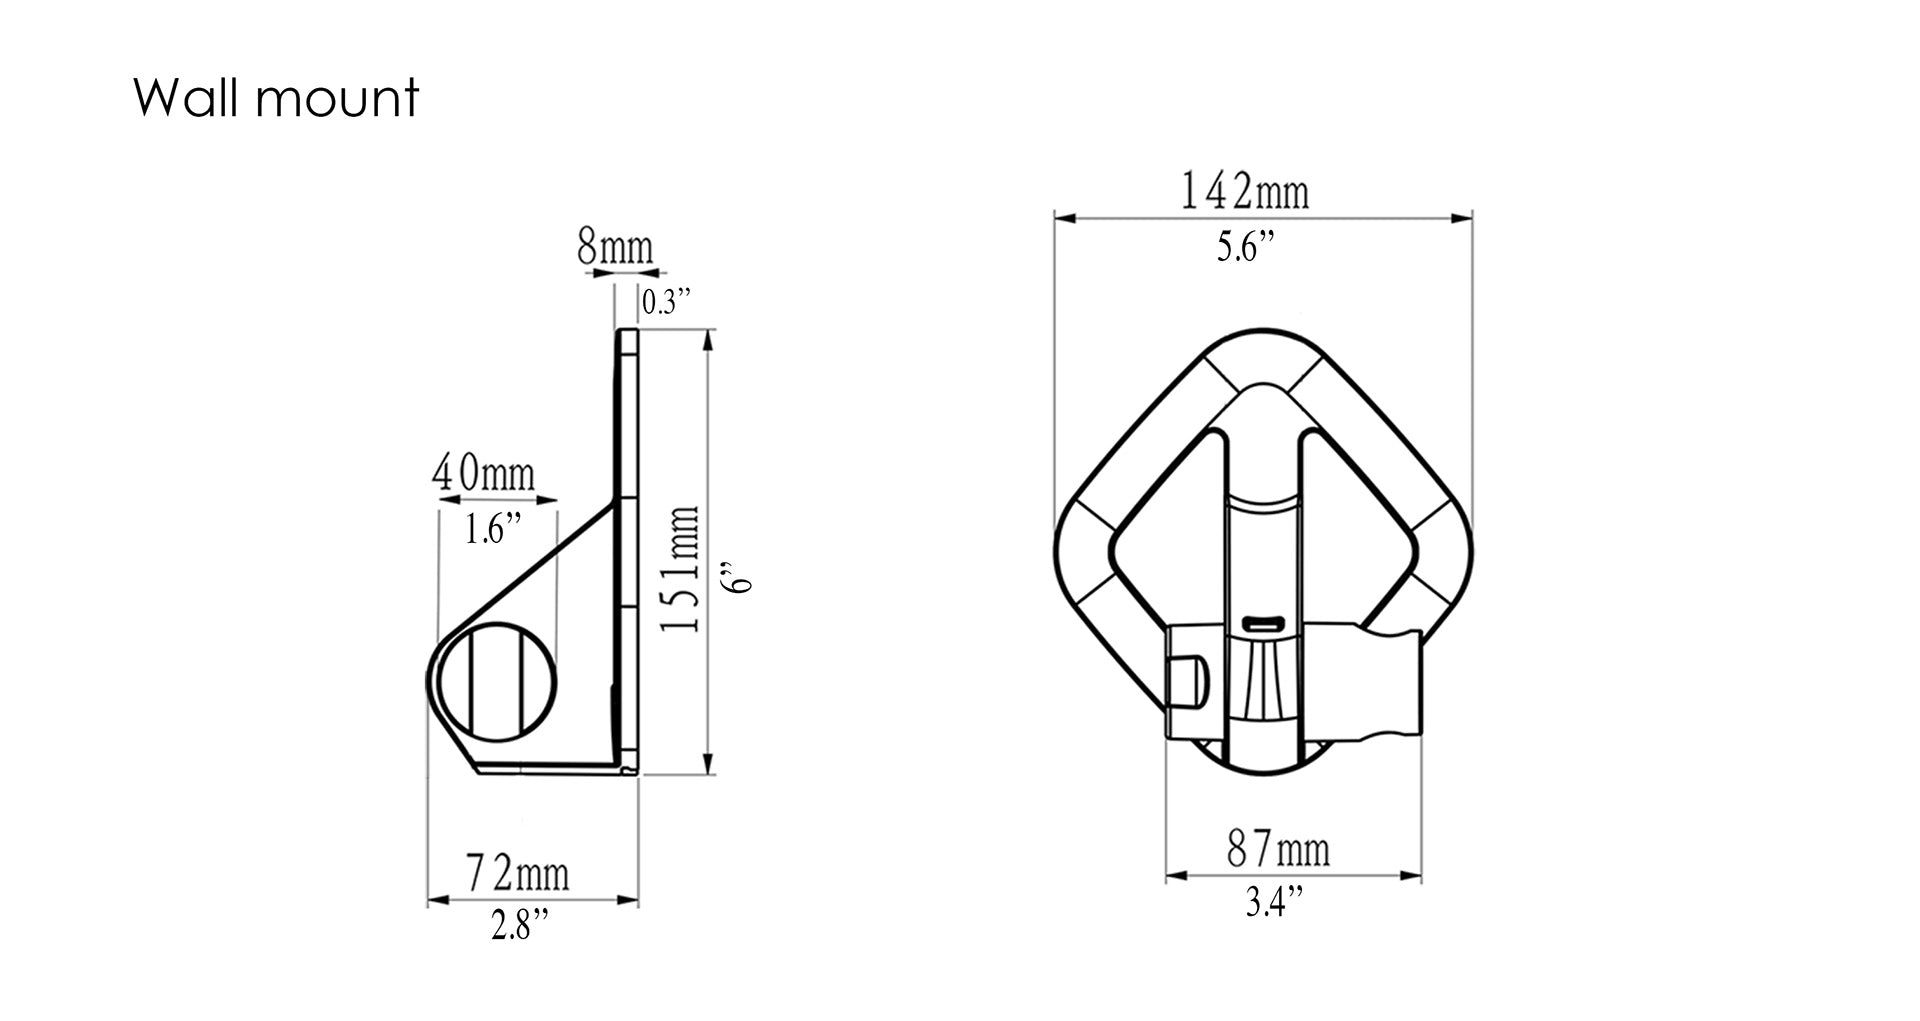 Cirrus Magnetic Wall Mount Dimensions